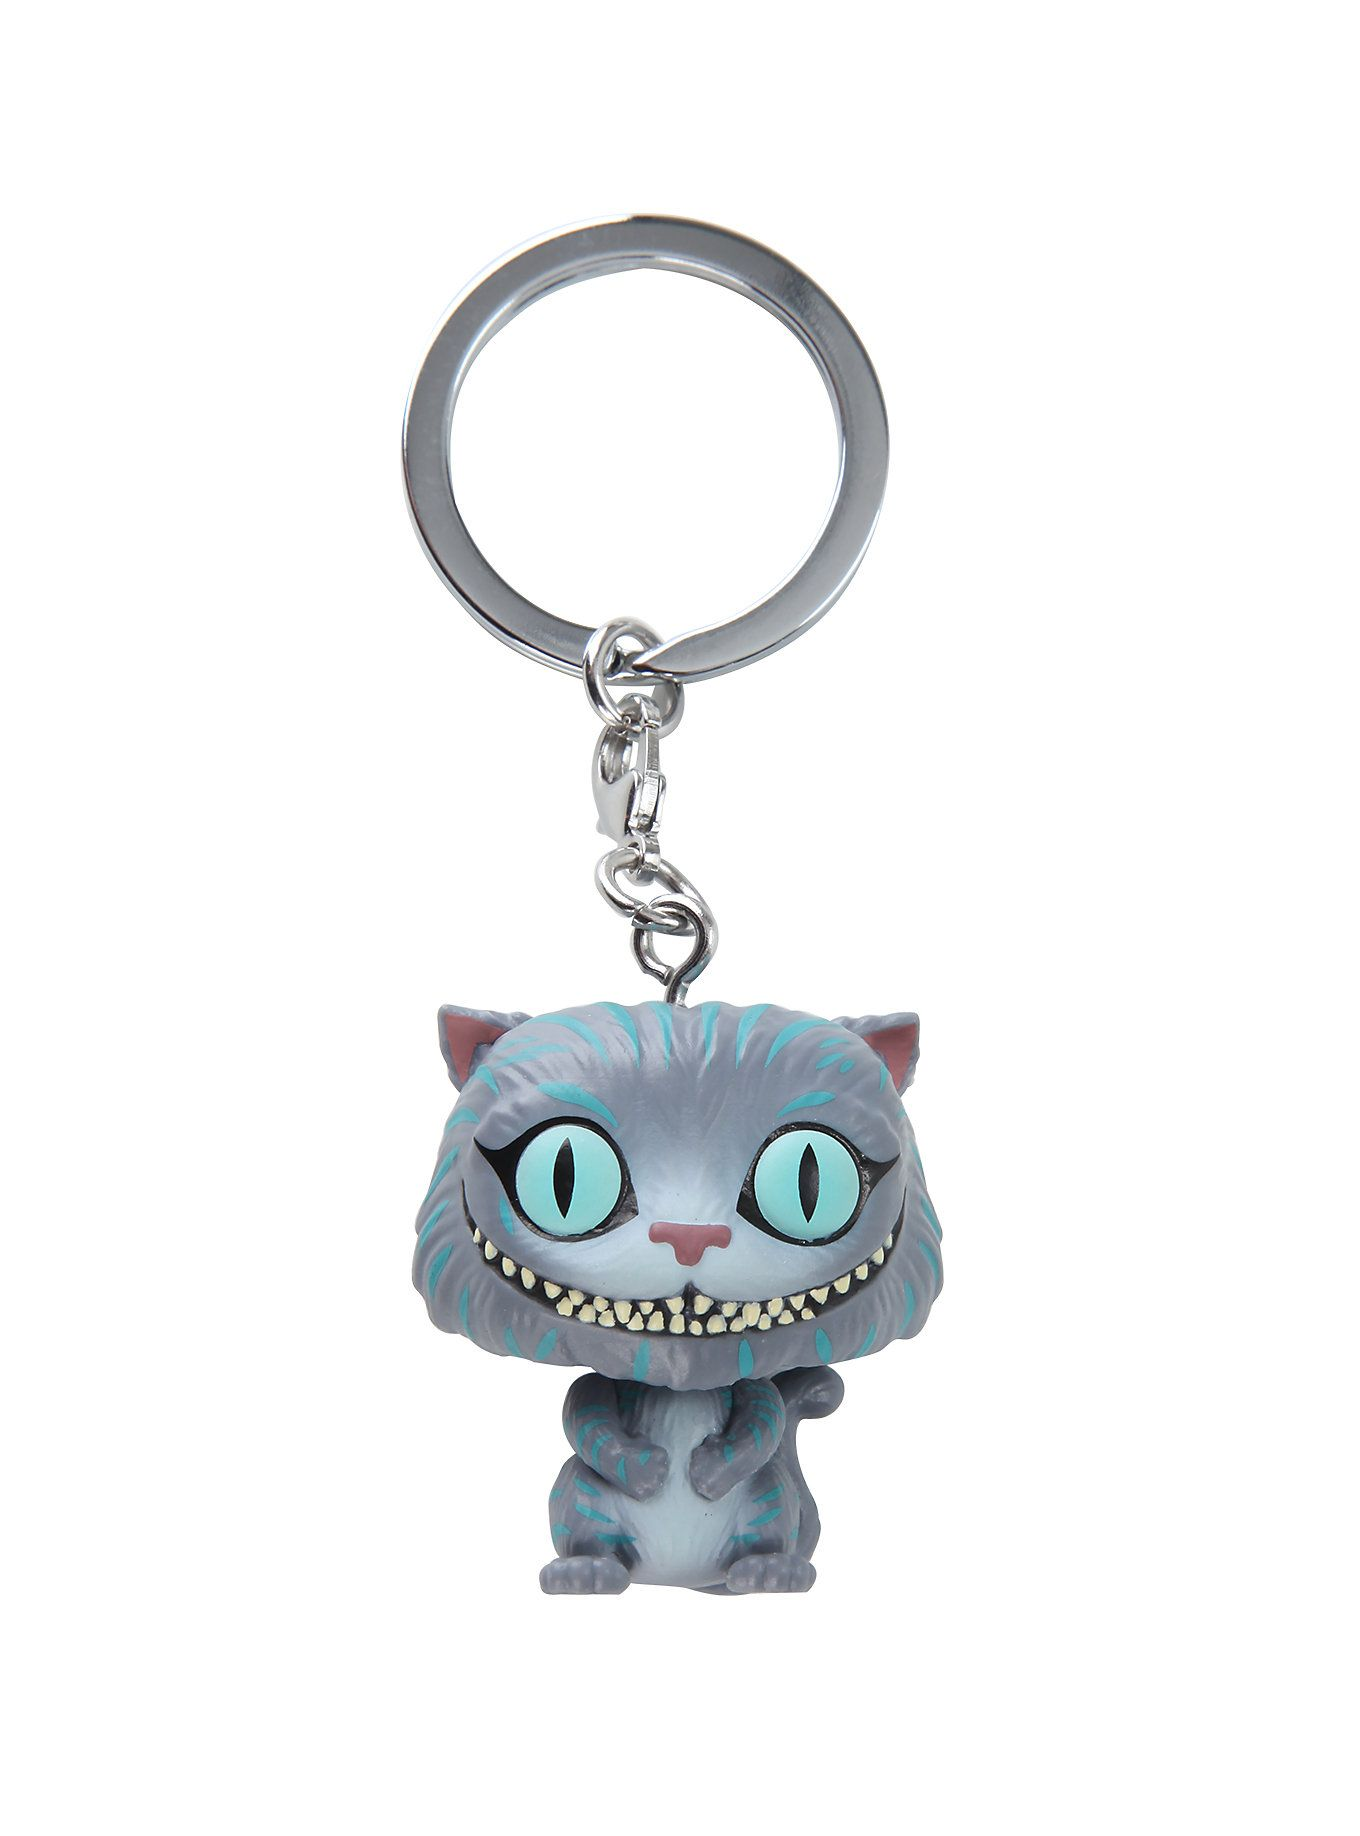 0c2835cb8 Funko Disney Alice In Wonderland Pocket Pop! Cheshire Cat Key Chain Hot  Topic Exclusive,